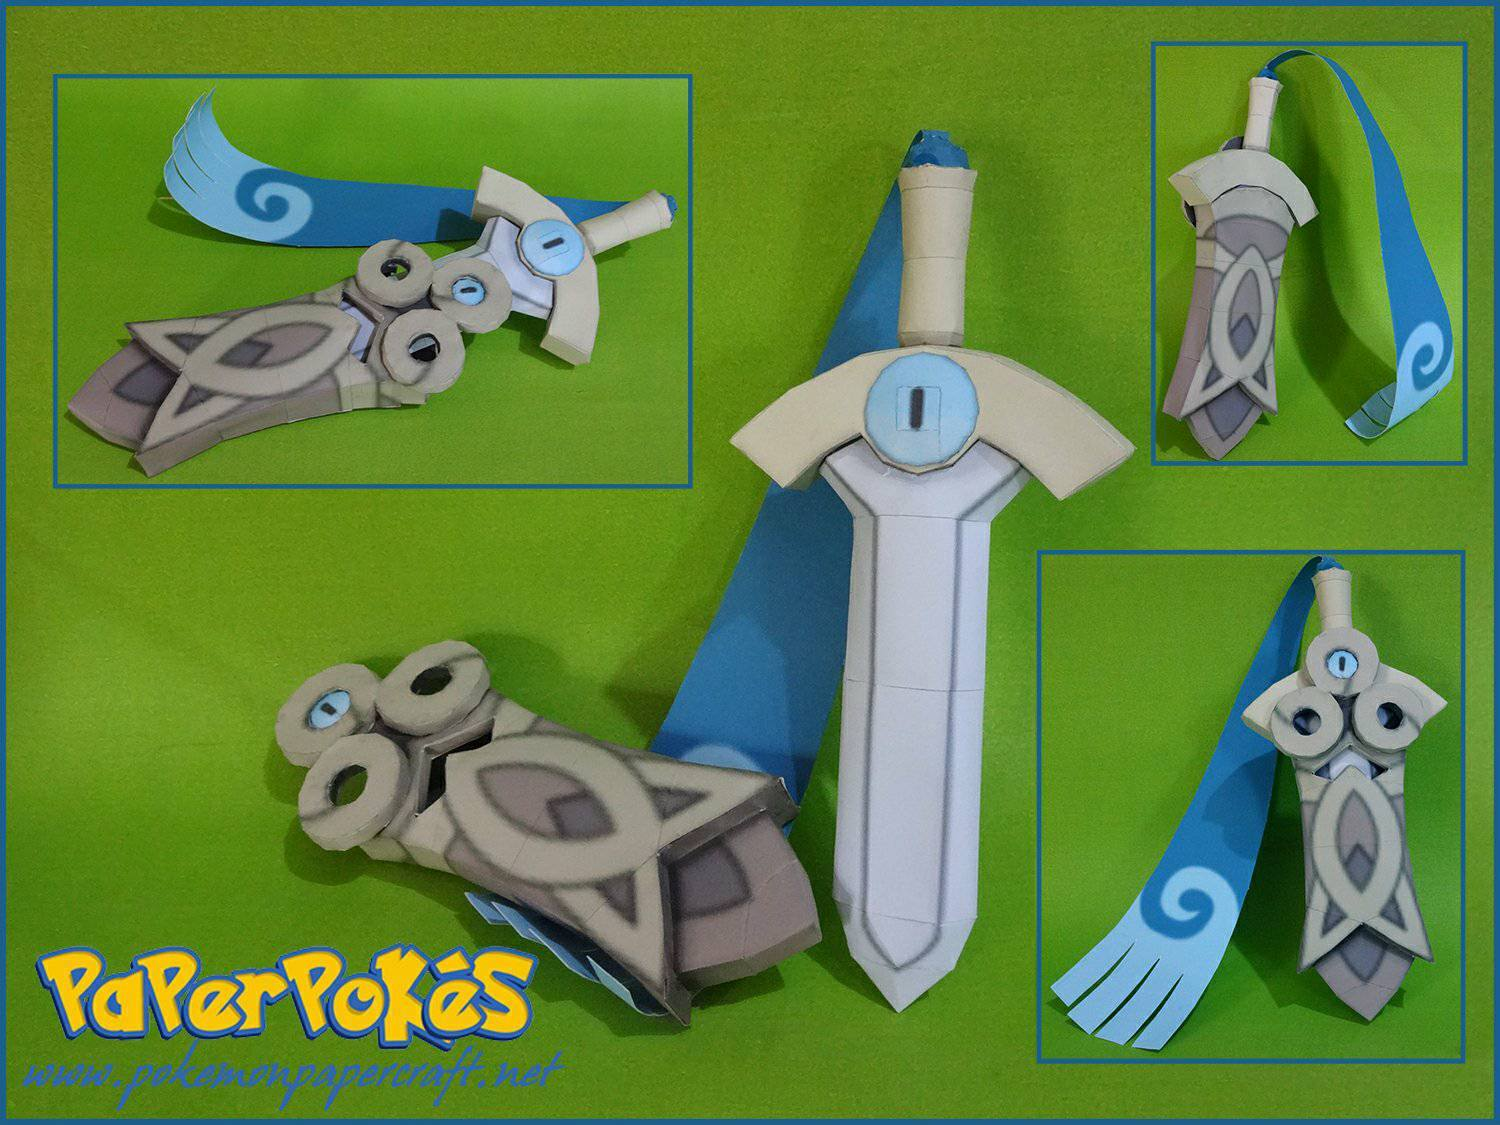 679 Honedge Pokémon Papercraft Name Type Steel Ghost Species Sword Height 0 8 M 2 07 Weight Kg 4 Lbs